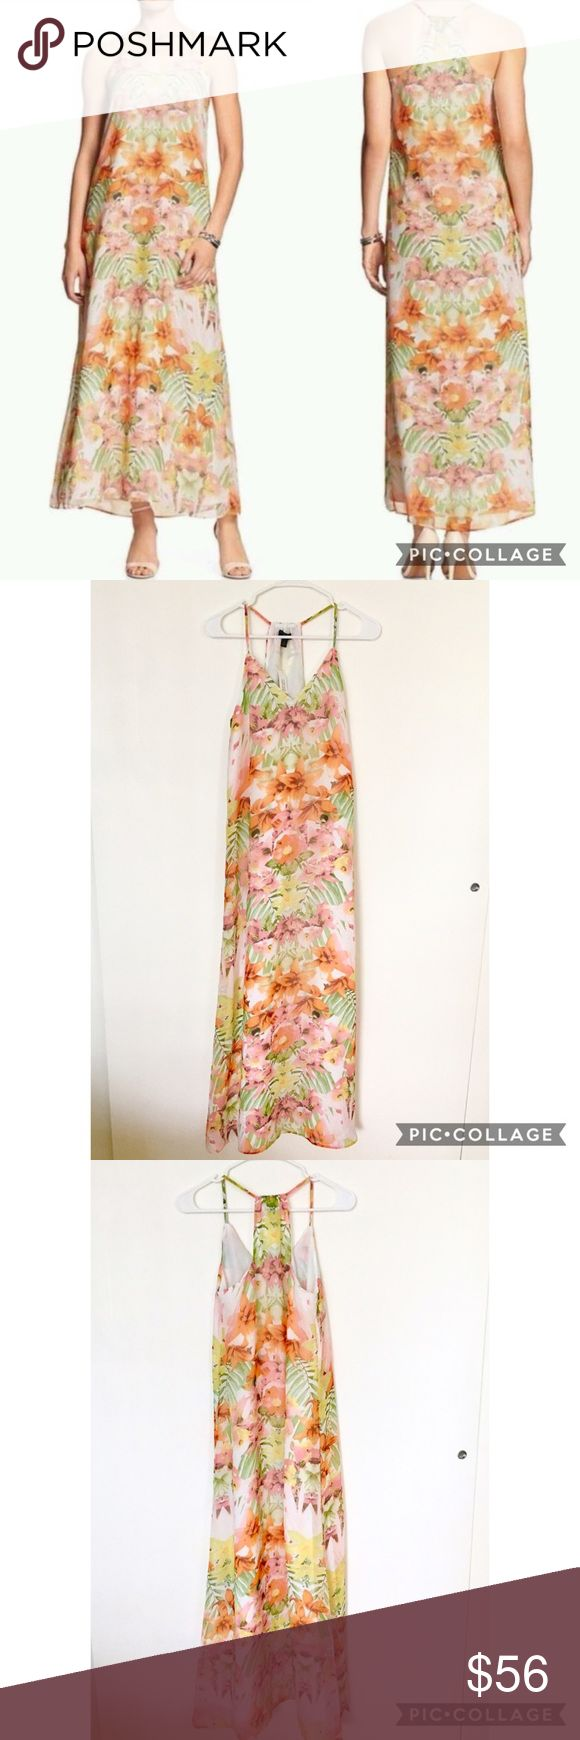 🌴NWT Banana Republic Tropical Print Maxi Dress NWT Banana Republic tropical print maxi dress! Beautiful colors, light and airy chiffon material, fully lined. Size 4. Please feel free to ask any questions before purchasing. I am happy to provide measurements/photos upon request! 😊  ❣️Open to Offers ❣️No Trades or Holds ❣️Smoke Free Home ❣️Bundle Discounts! 15% off 2+ items Banana Republic Dresses Maxi